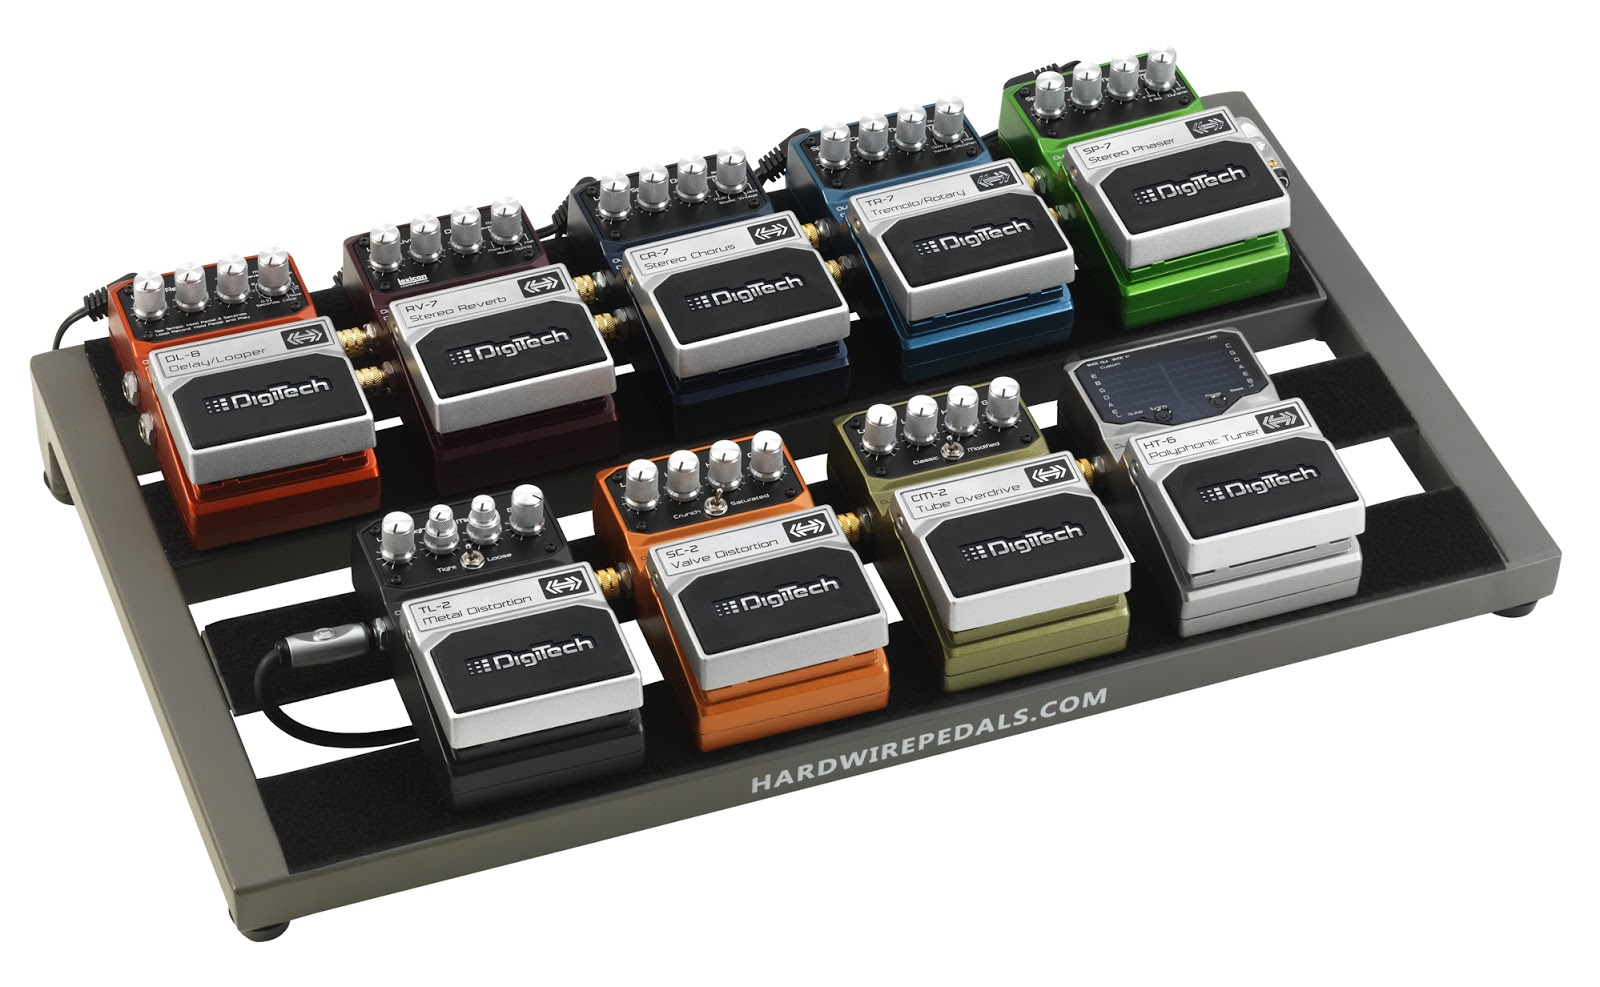 digitech hardwire pedalboard the gear page. Black Bedroom Furniture Sets. Home Design Ideas